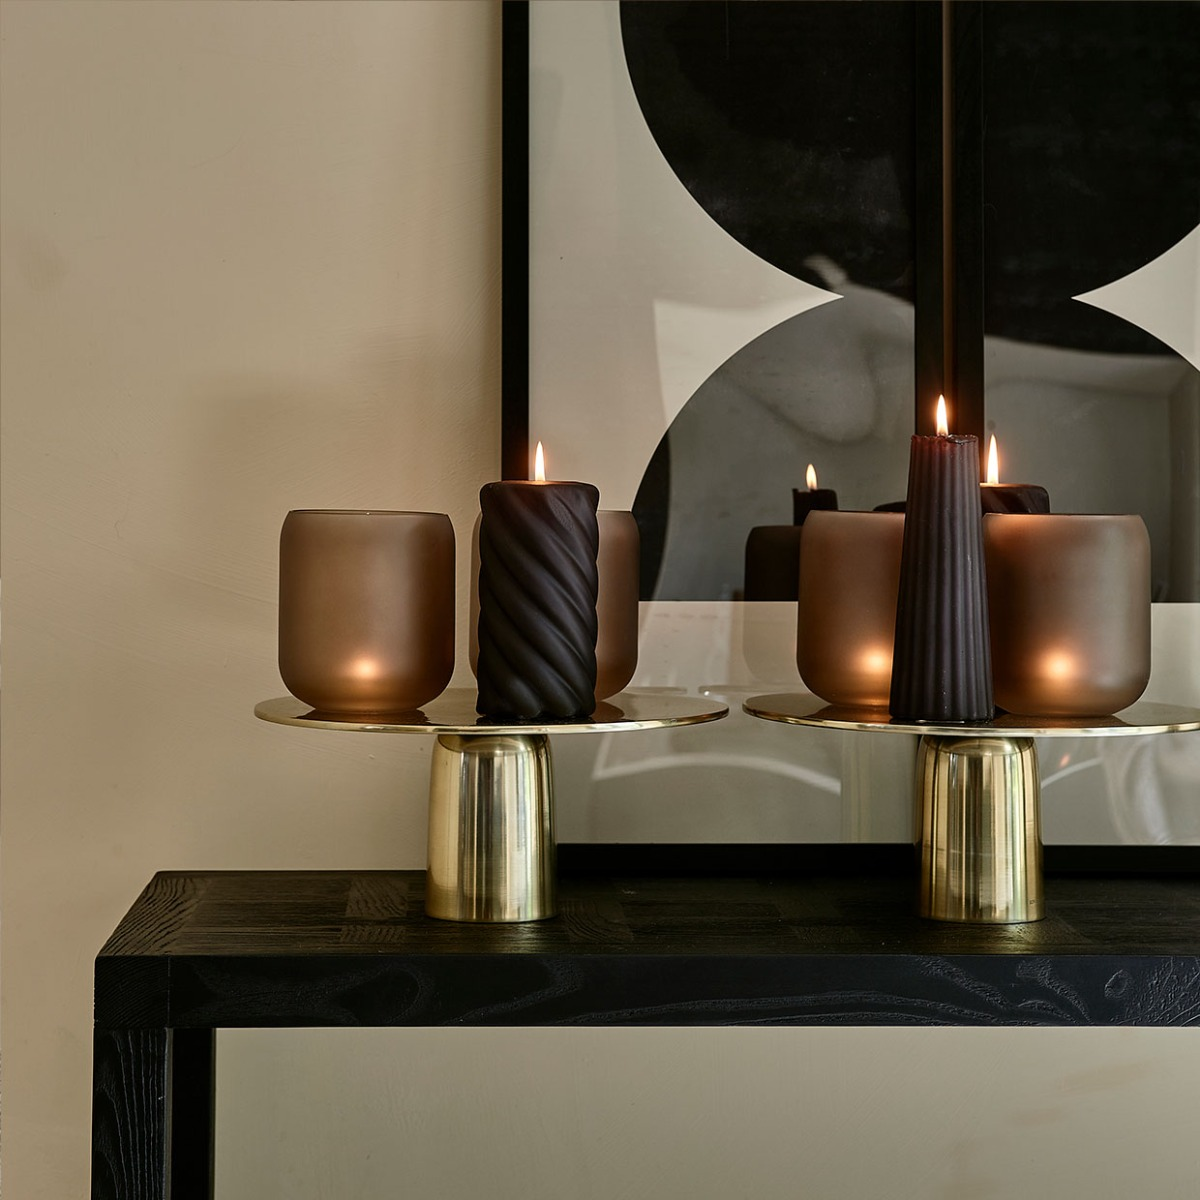 Vintage Glamour table with candles